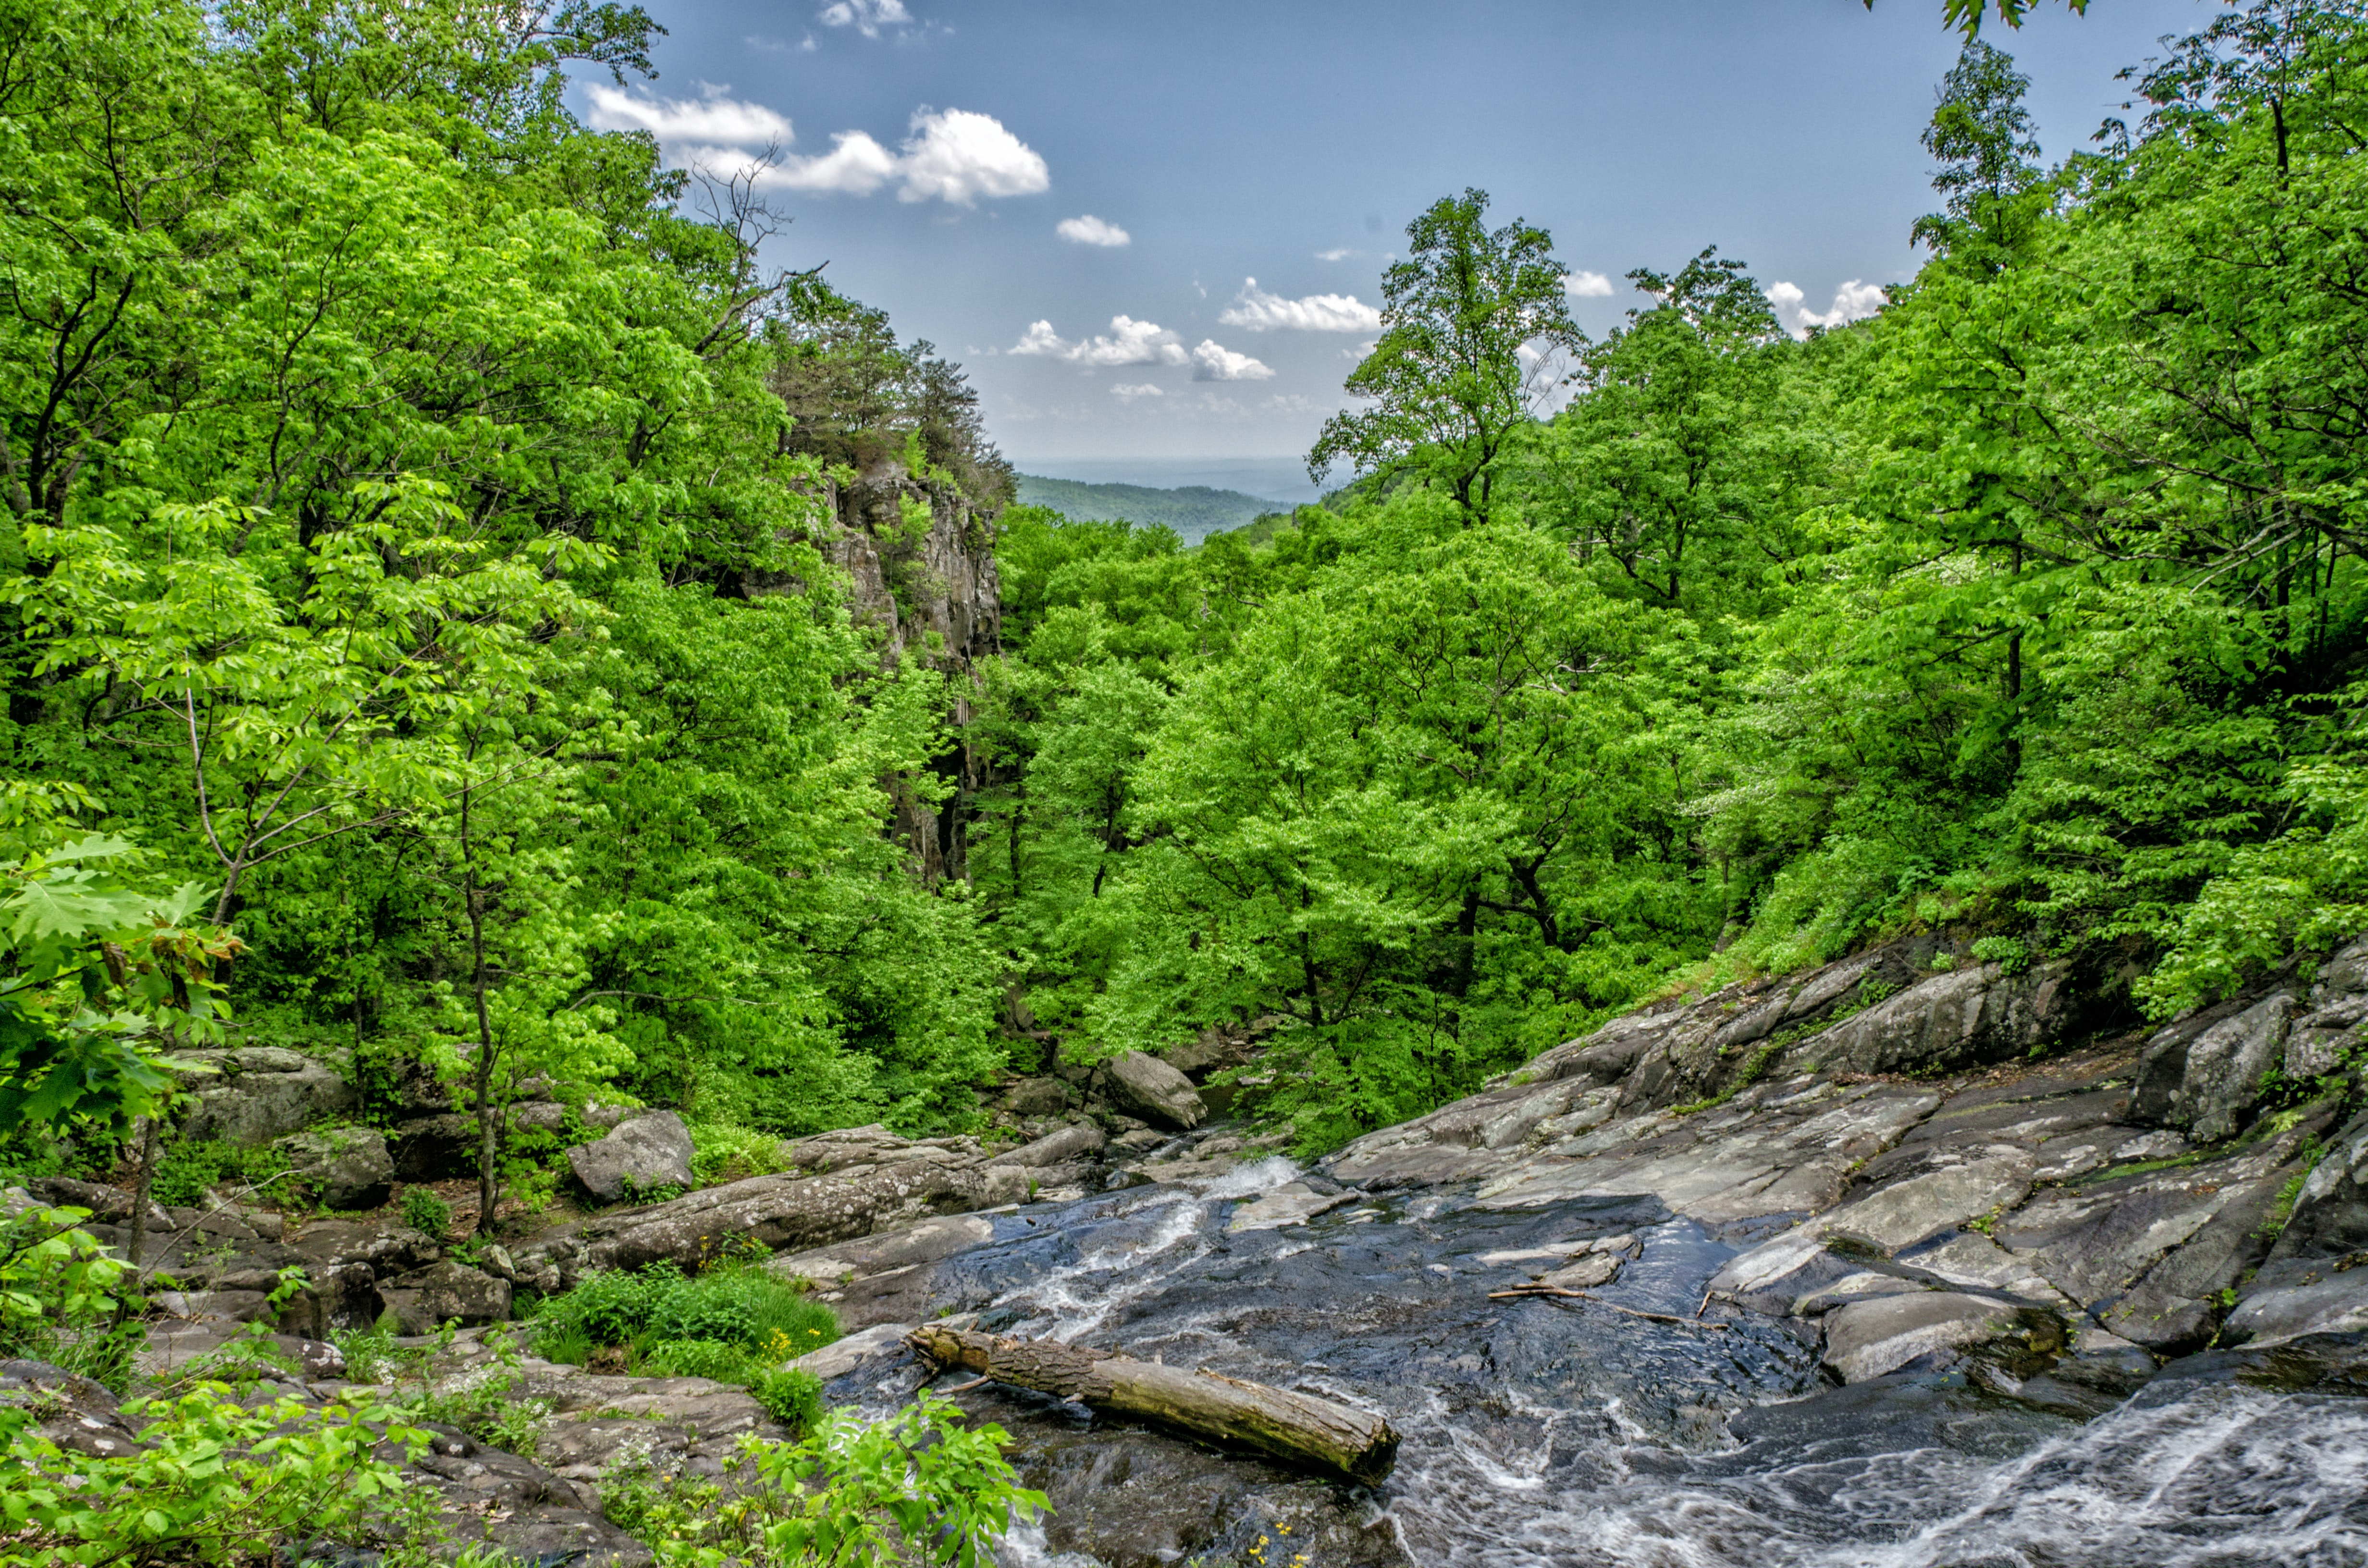 A brook tumbling down a rocky bed in a lush forest environment